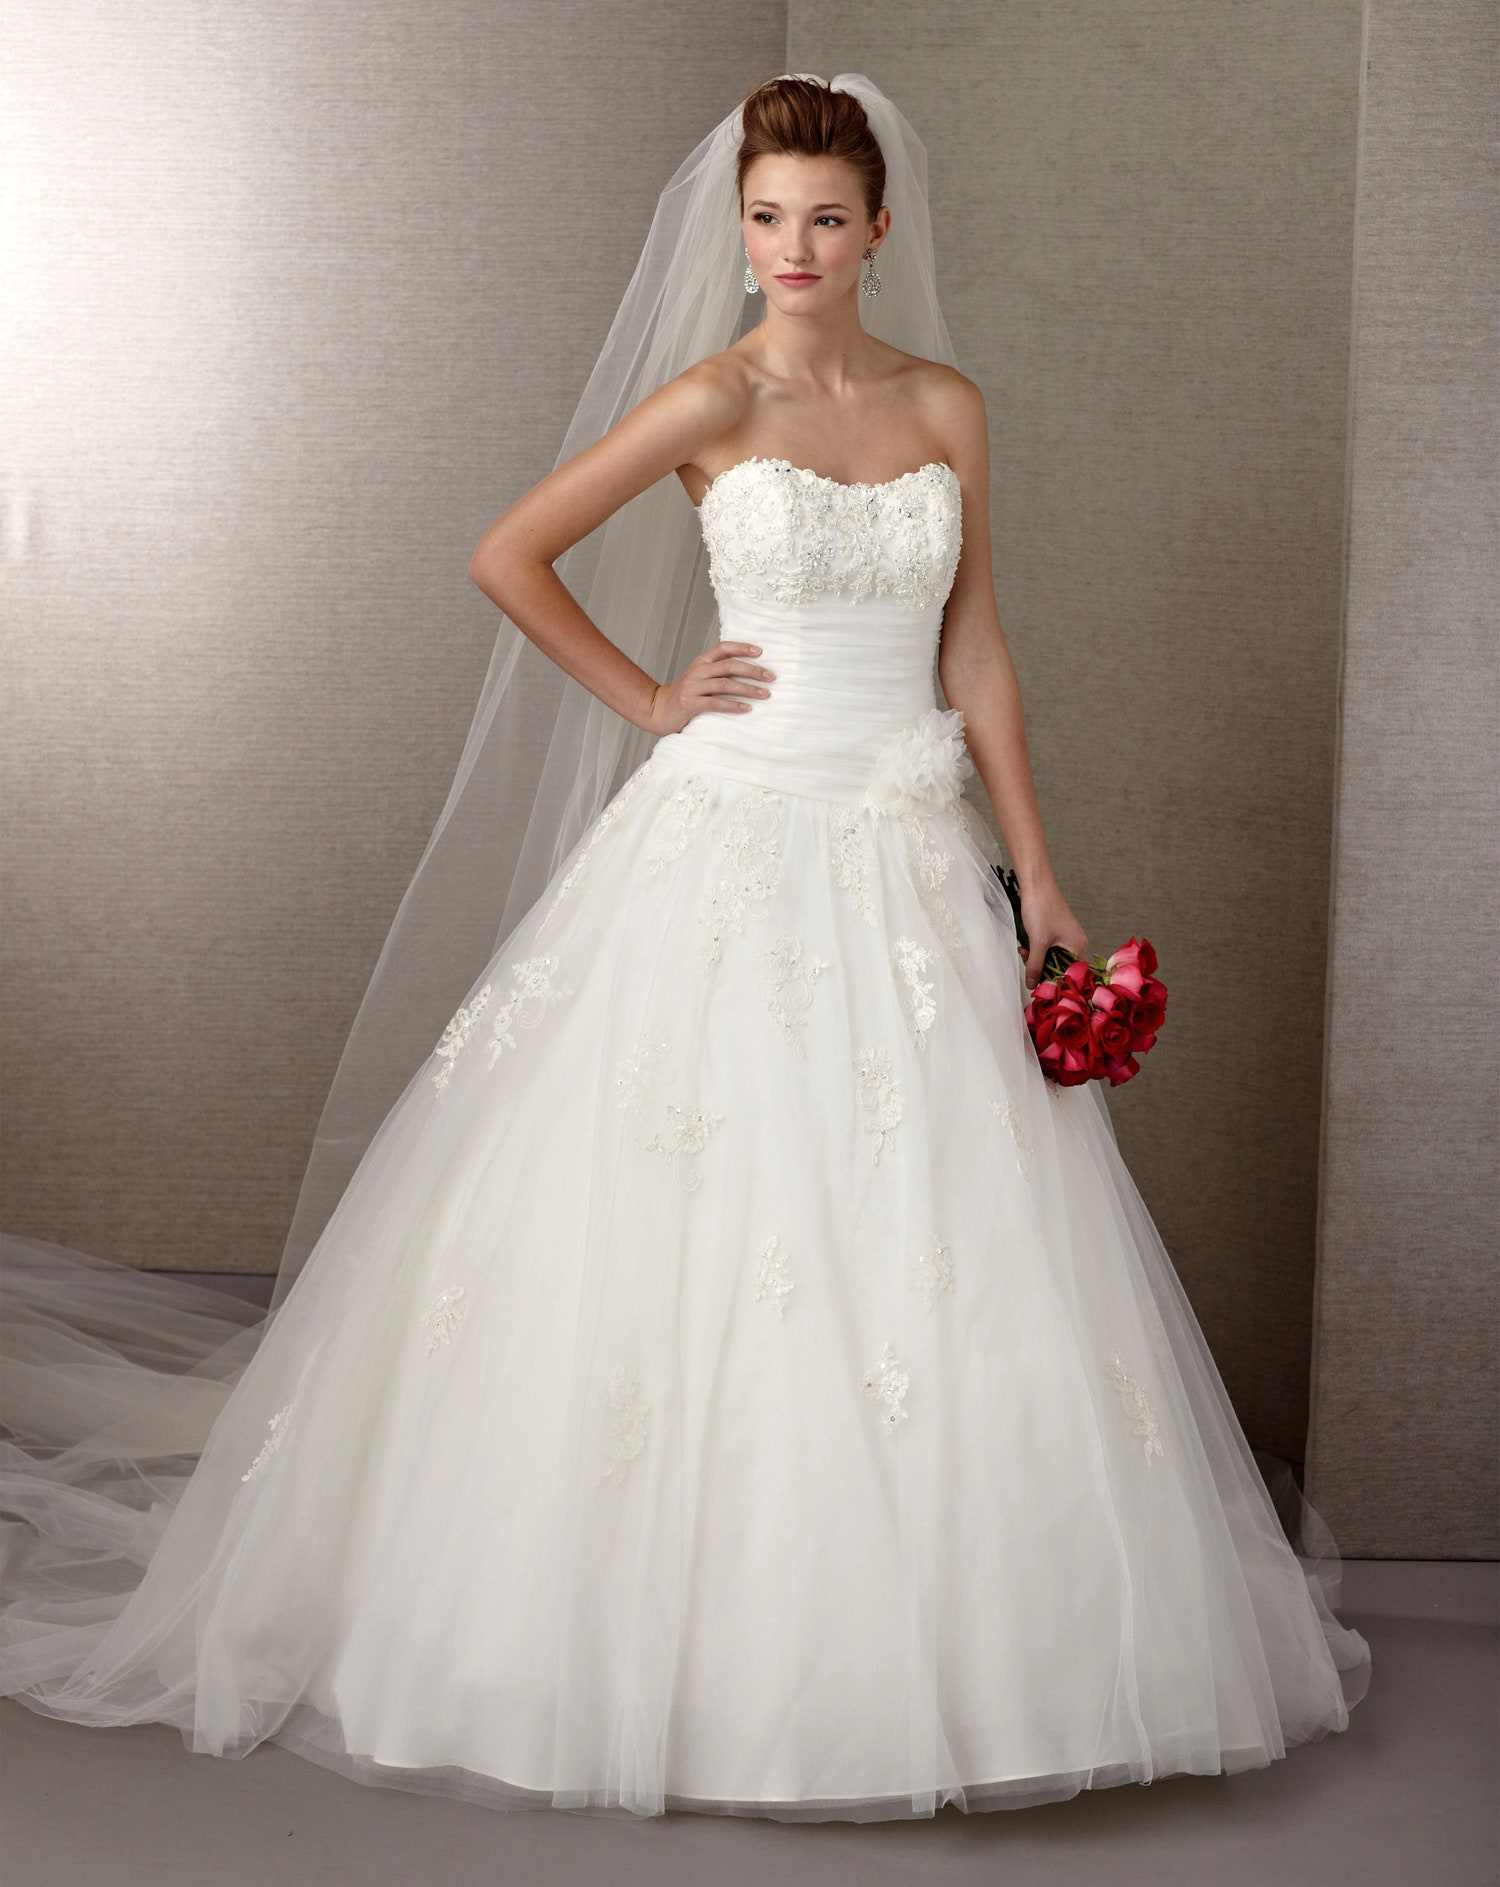 Exciting Places to buy Wedding Gowns in Lagos